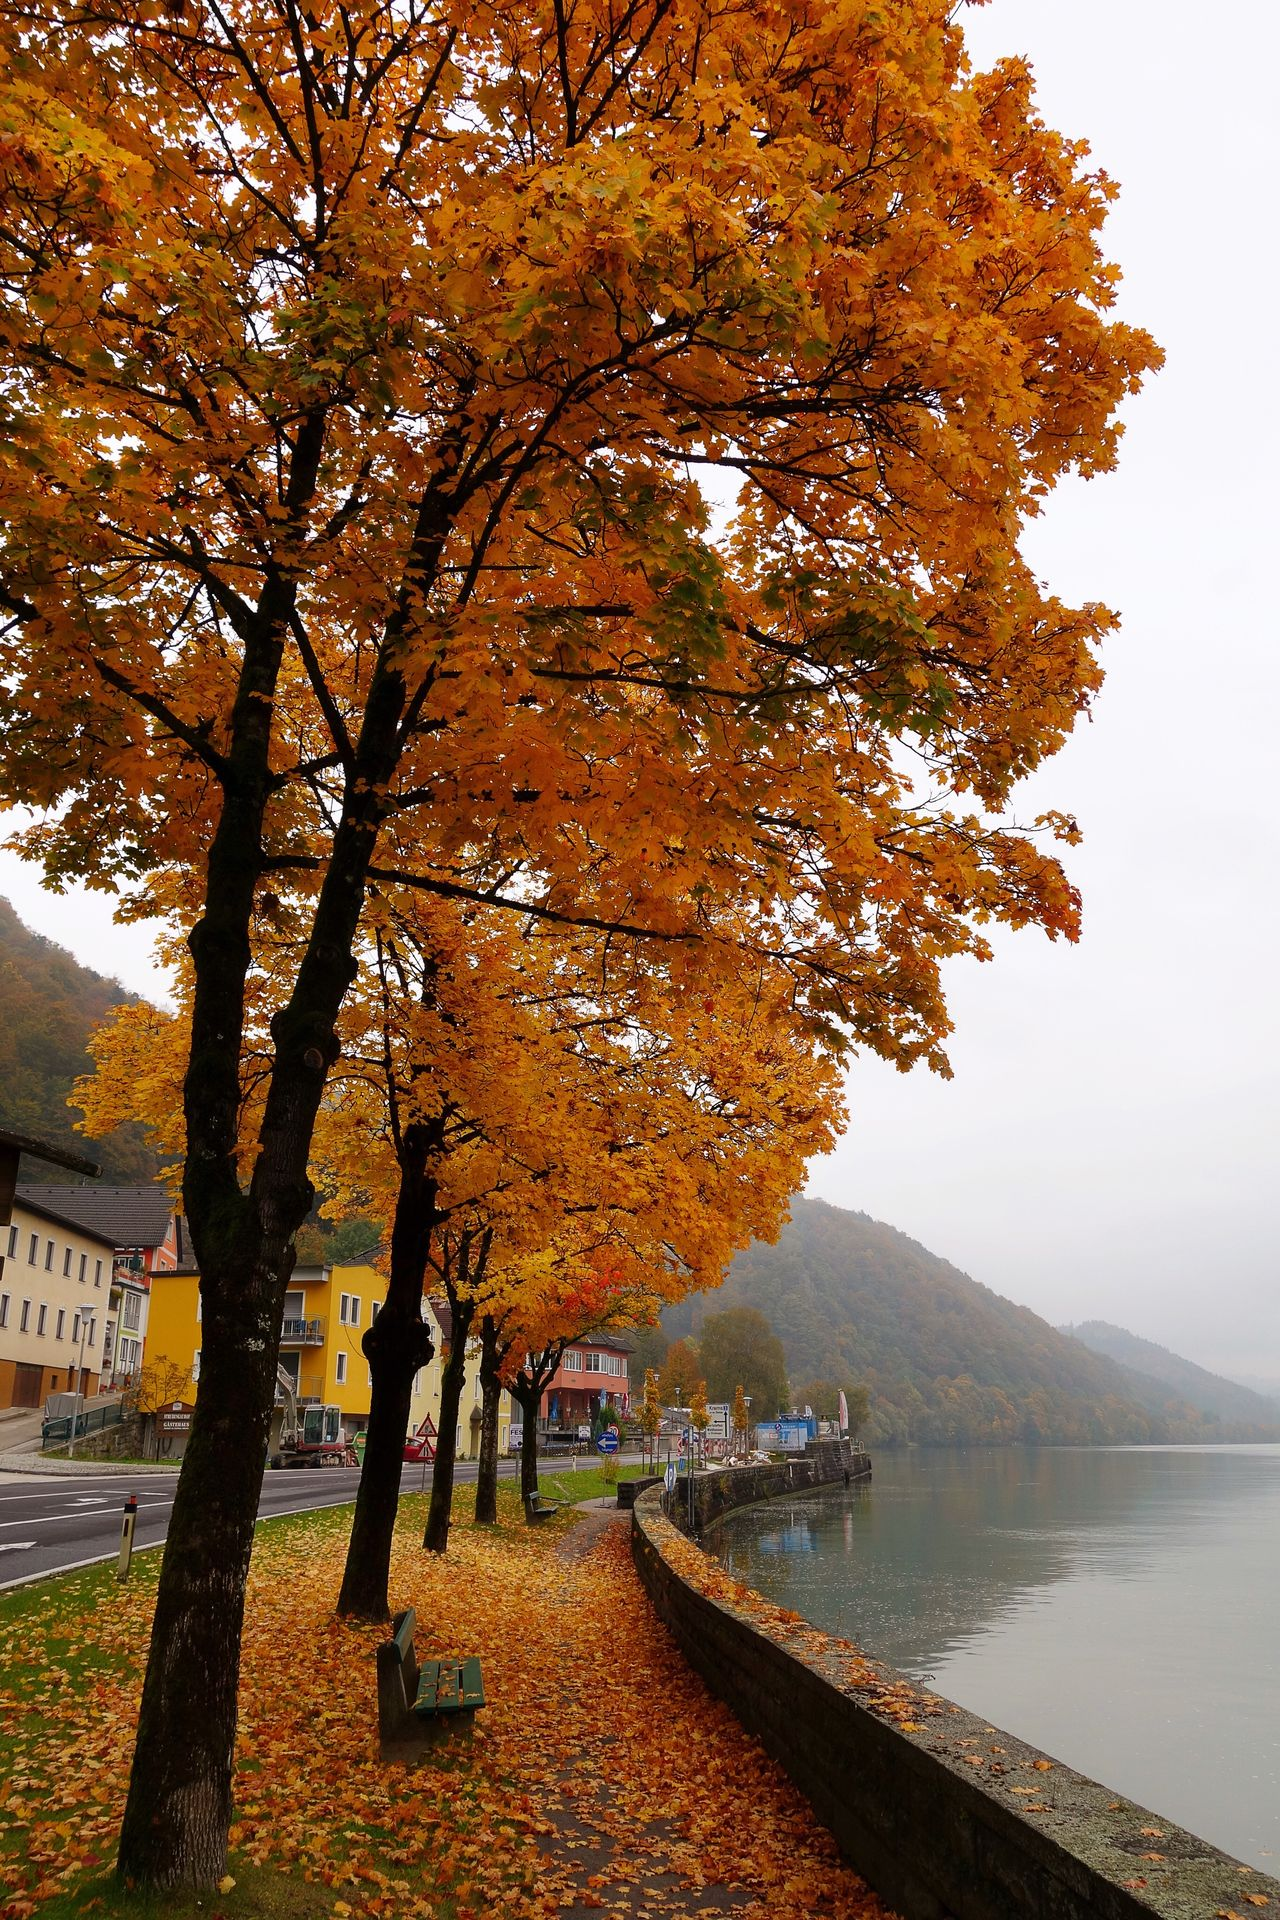 Tree Autumn Nature Beauty In Nature Scenics Change Water Tranquility Tranquil Scene Outdoors Leaf Travel Destinations River Danube Danube River Orange Leaves Orange Color Fall Fall Beauty Fall Colors Fall Leaves Austria Austria ❤ Wachau Peaceful